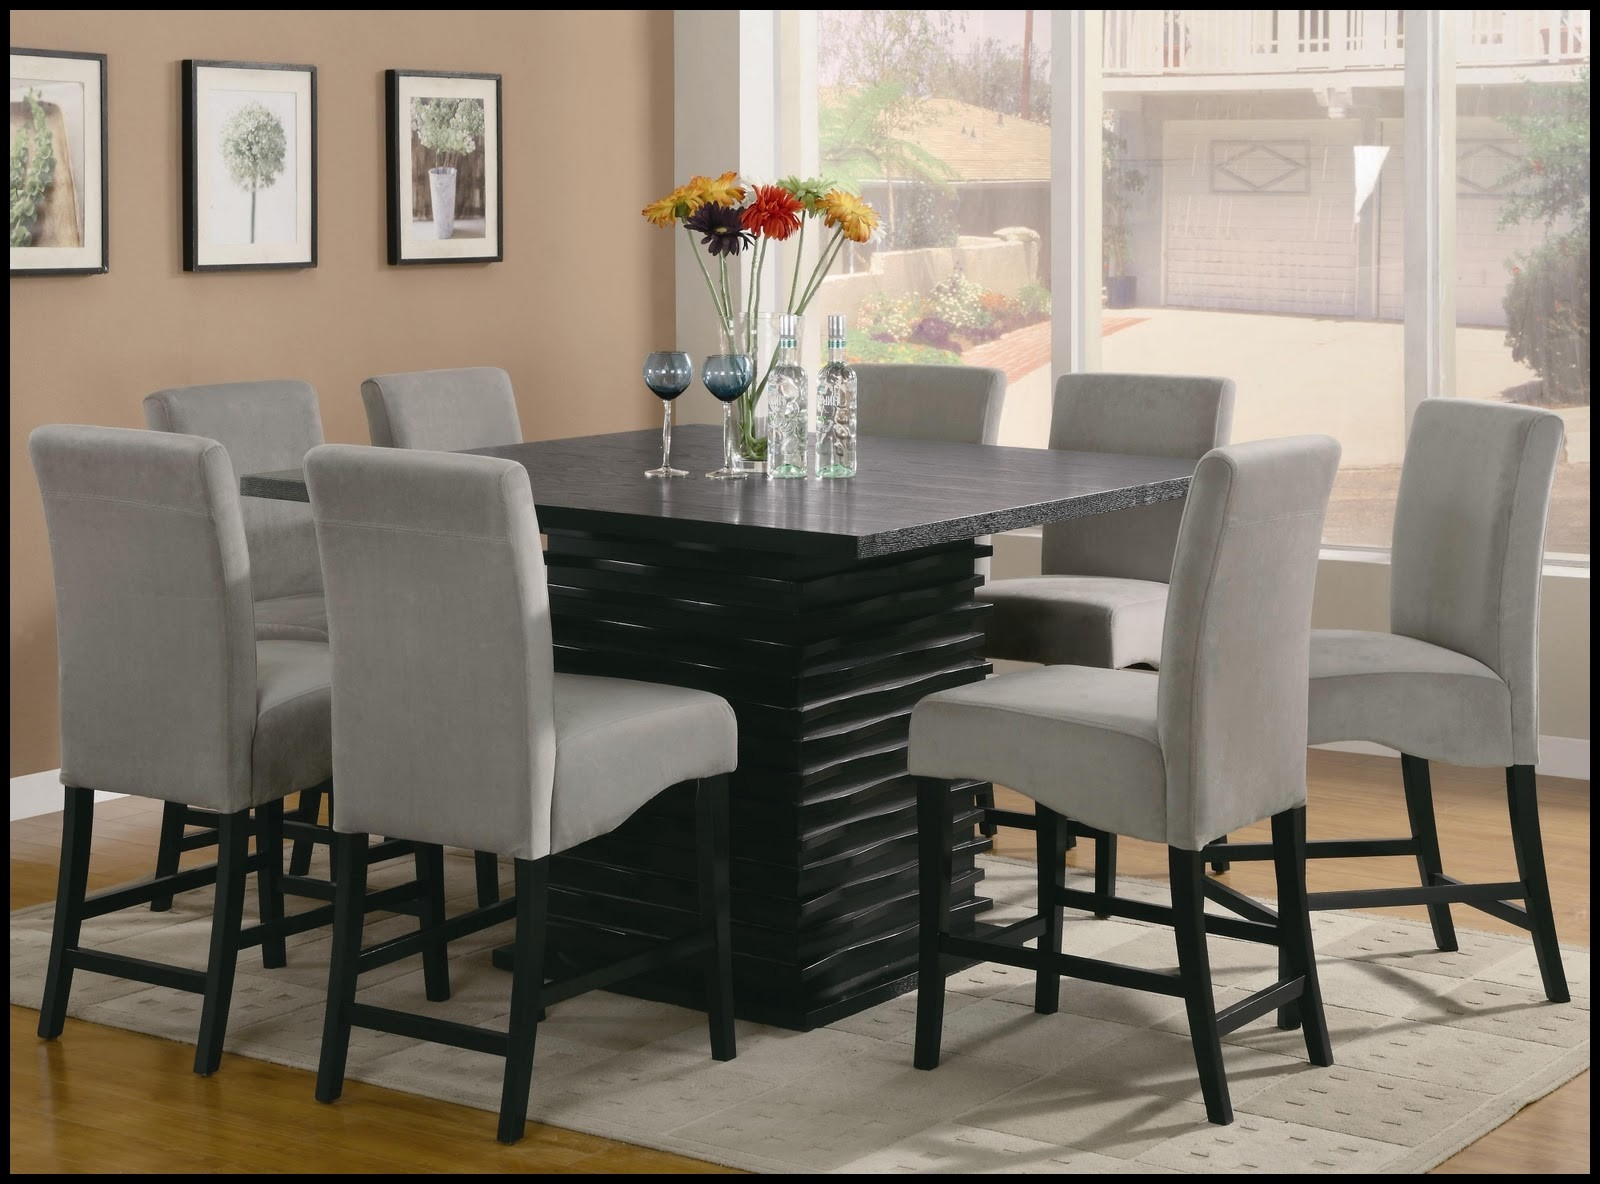 Dining Room Charming Value City Furniture Dining Sets H4 For Your